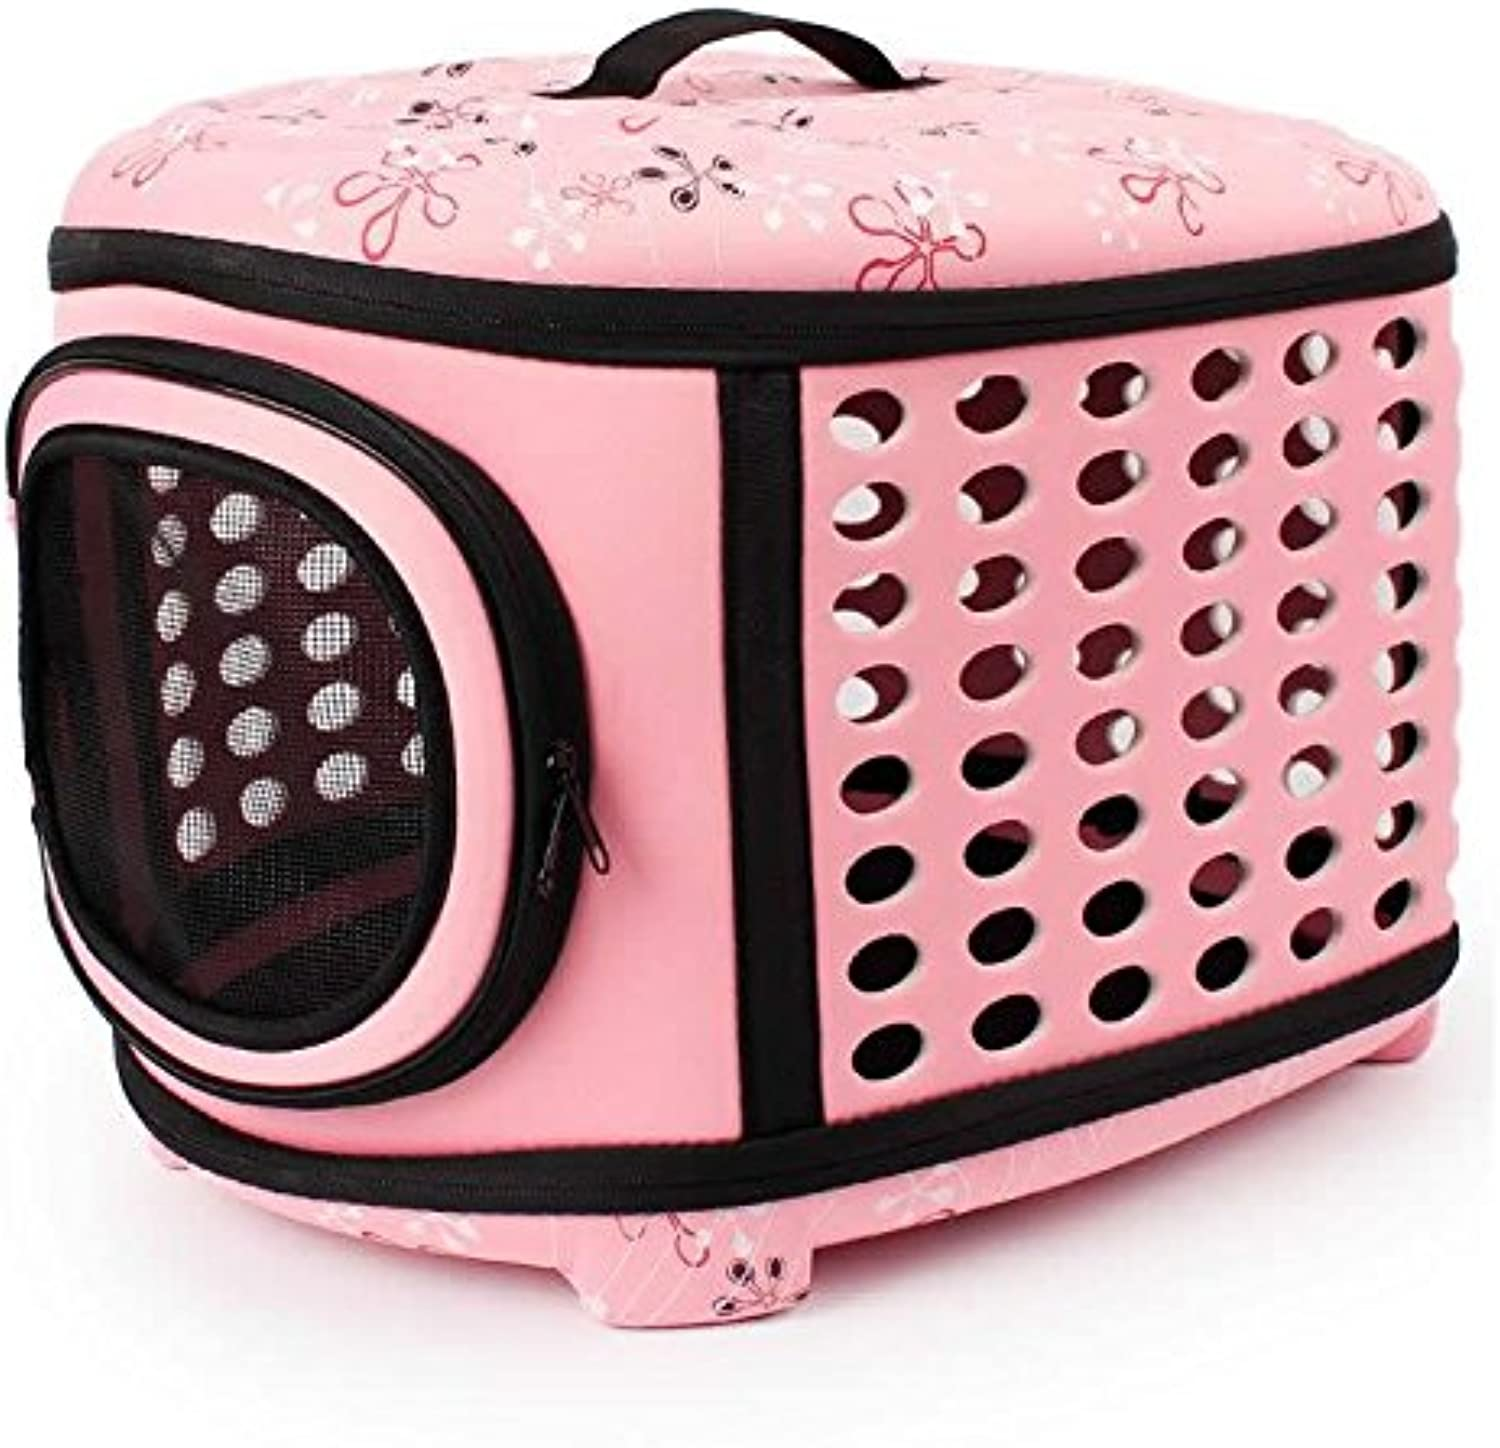 Pet Eva Dog Rabbit Cat Travel Tote Portable Handbag Folding Crate Cage Backpack Soft Carrier Kennel Breathable Outdoor Shoulder Bag[Pink] L 18.11 x13.78 x11.81